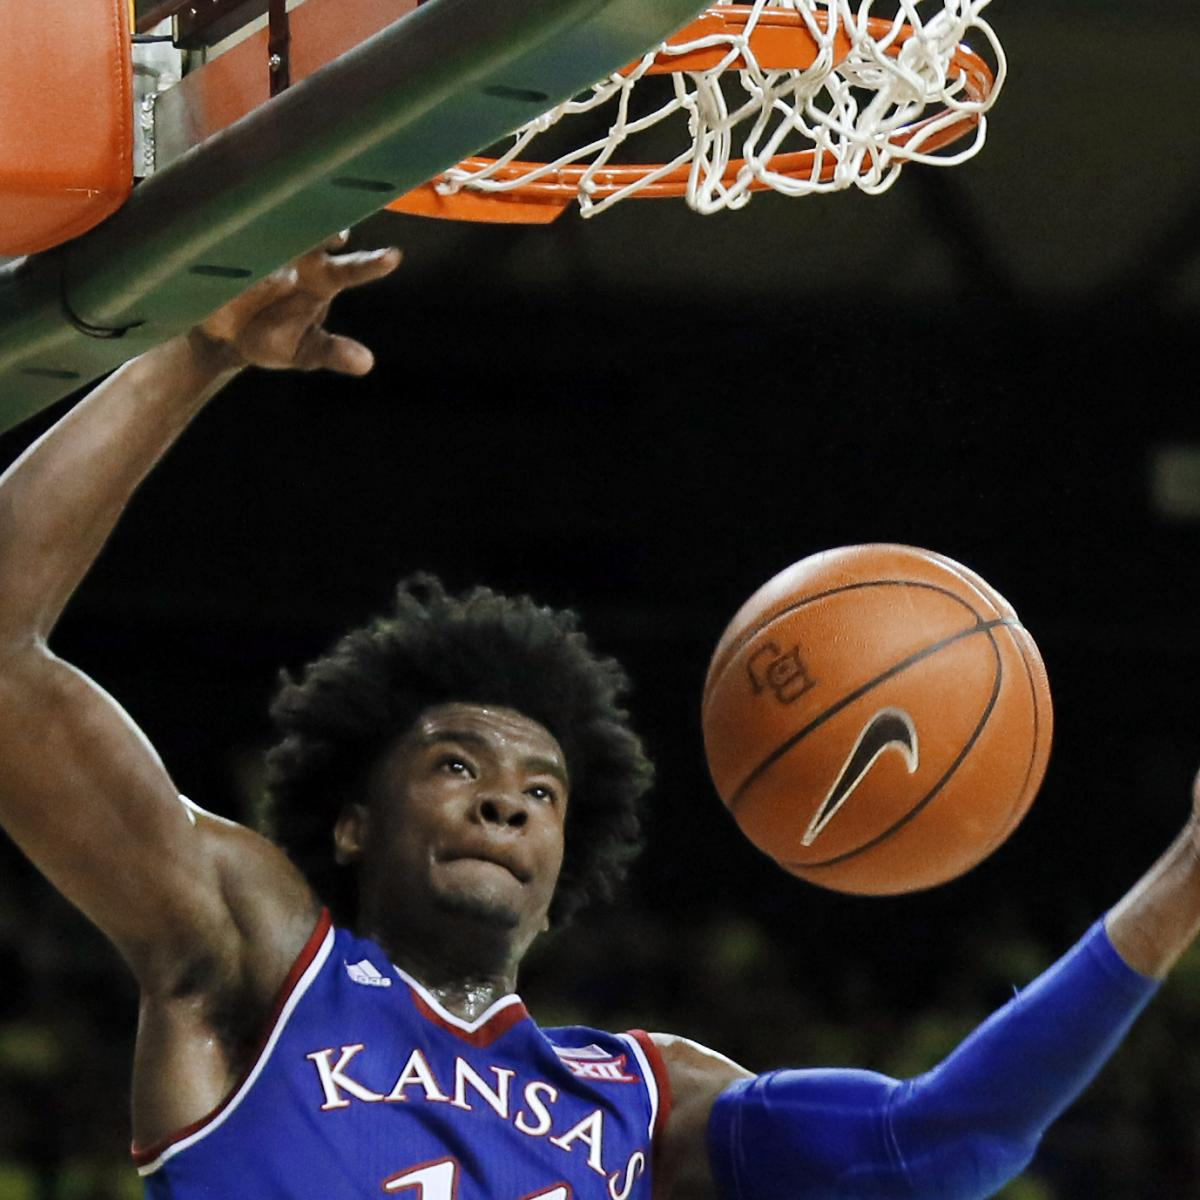 T Of C Alums 2017 Nba Draft: 2017 NBA Draft: Josh Jackson, Lonzo Ball Fighting To